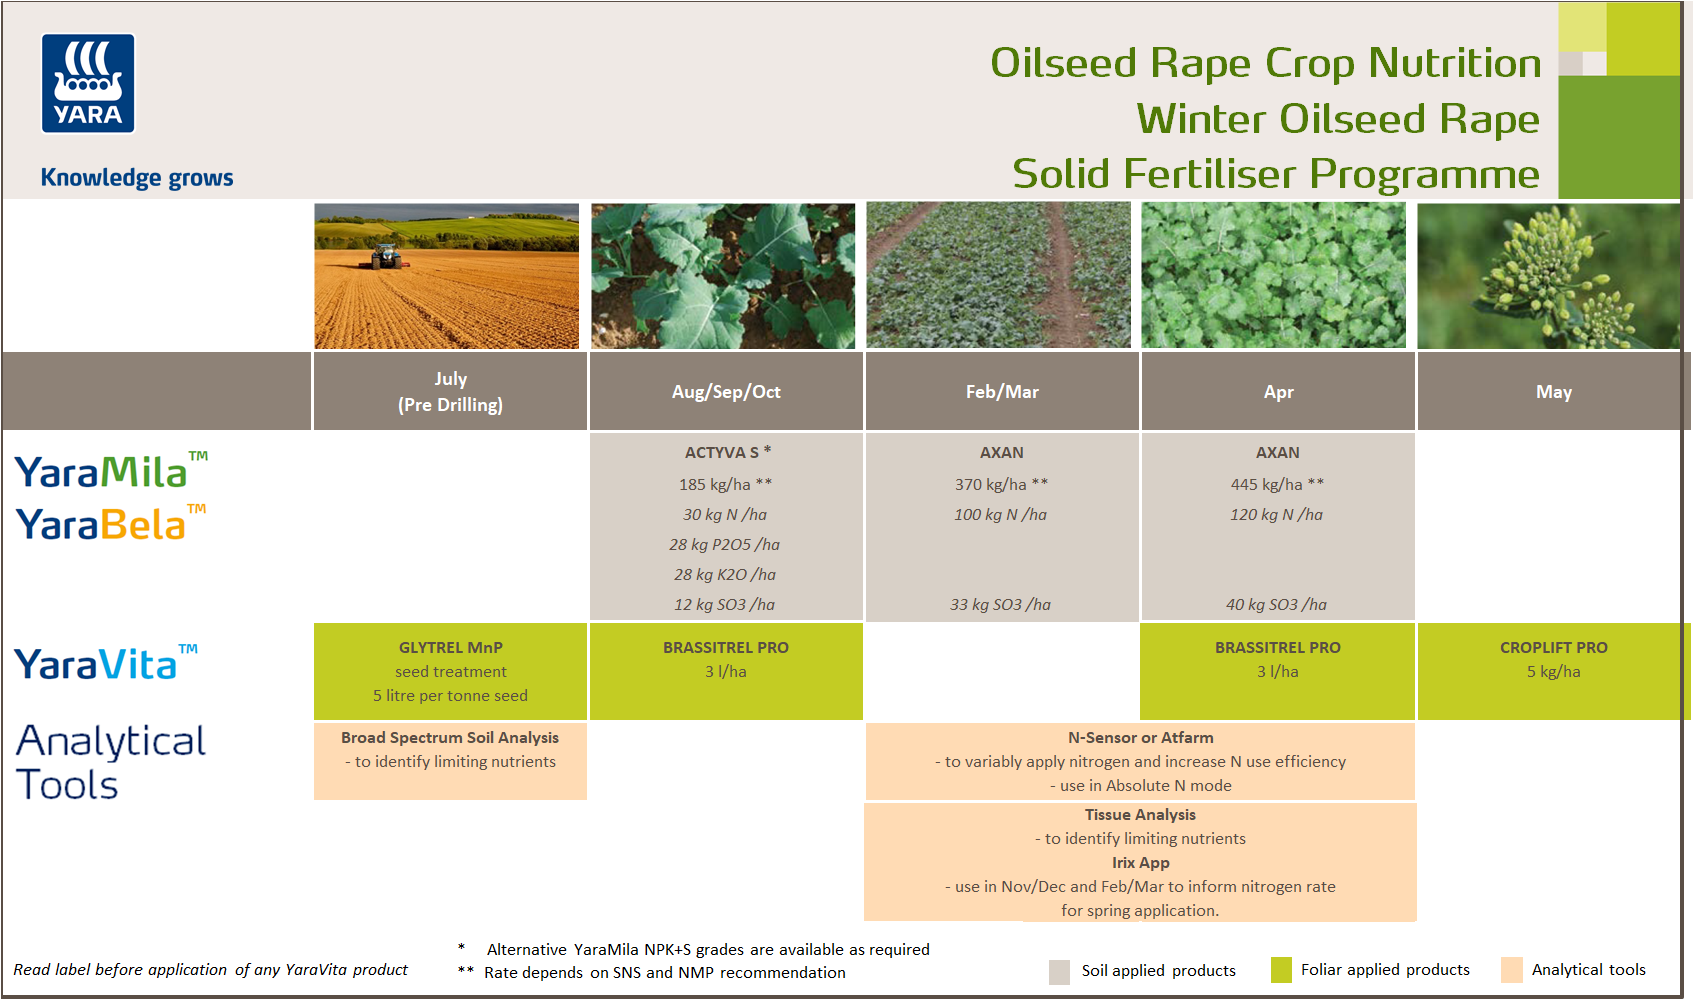 Winter oilseed rape fertiliser programme